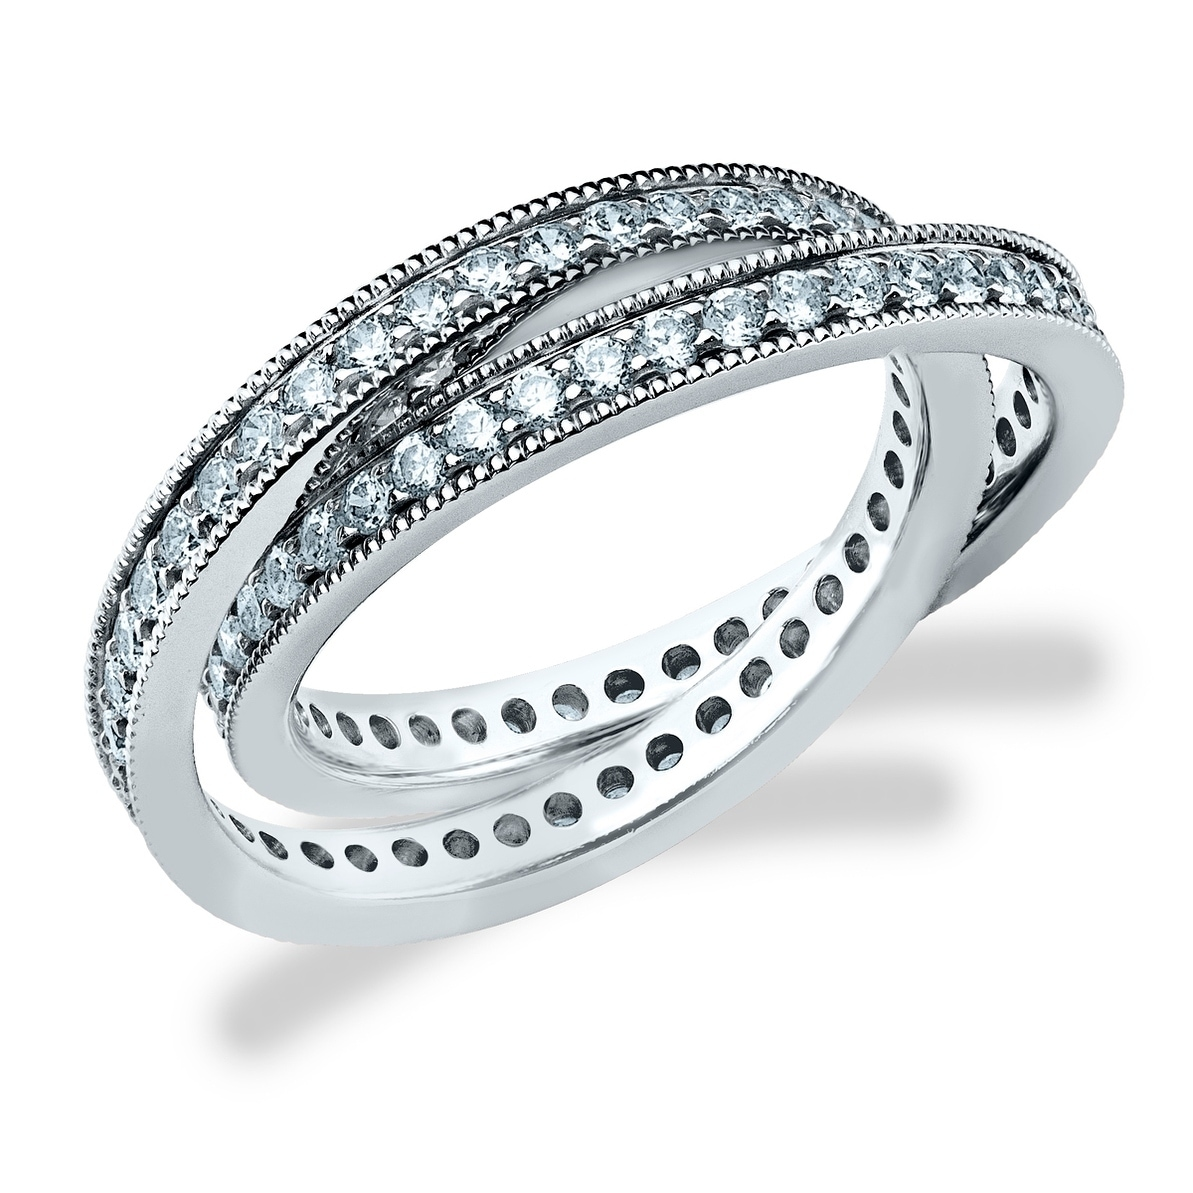 Shop Amore Platinum 1 0 Cttw Two Eternity Bands Rolling Diamond Ring